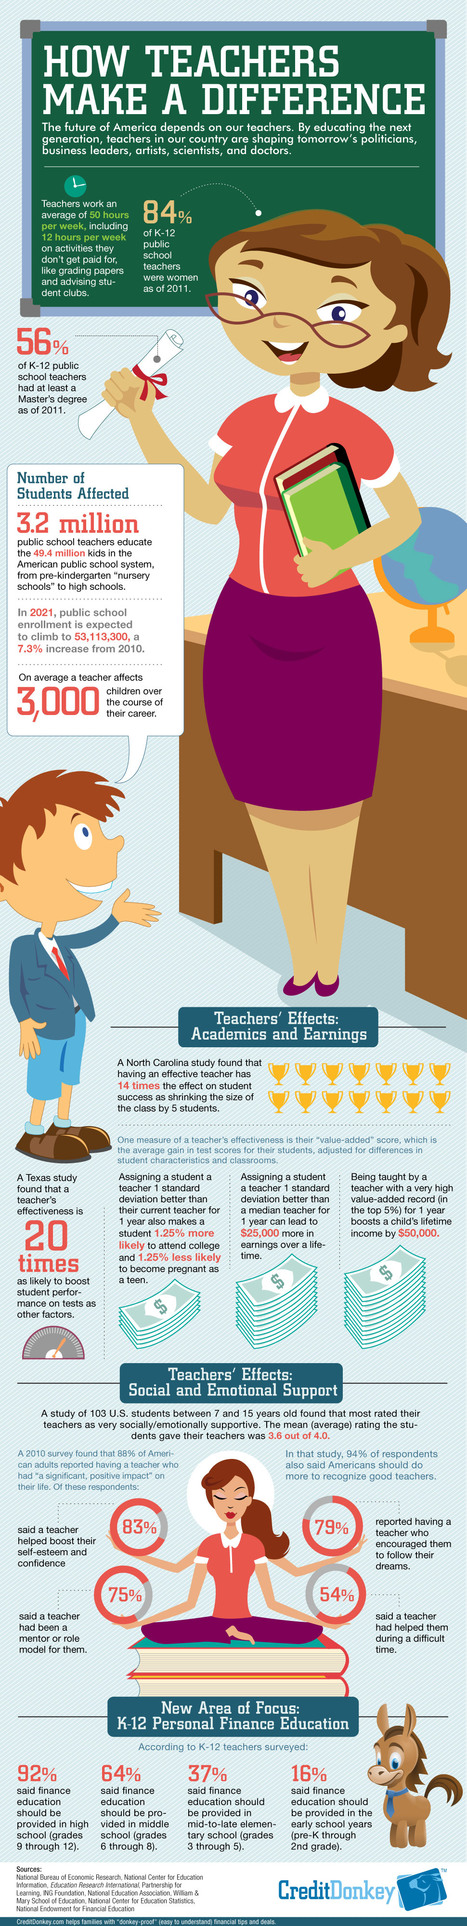 How Teachers Make a Difference [Infographic] | 21st Century Leadership | Scoop.it